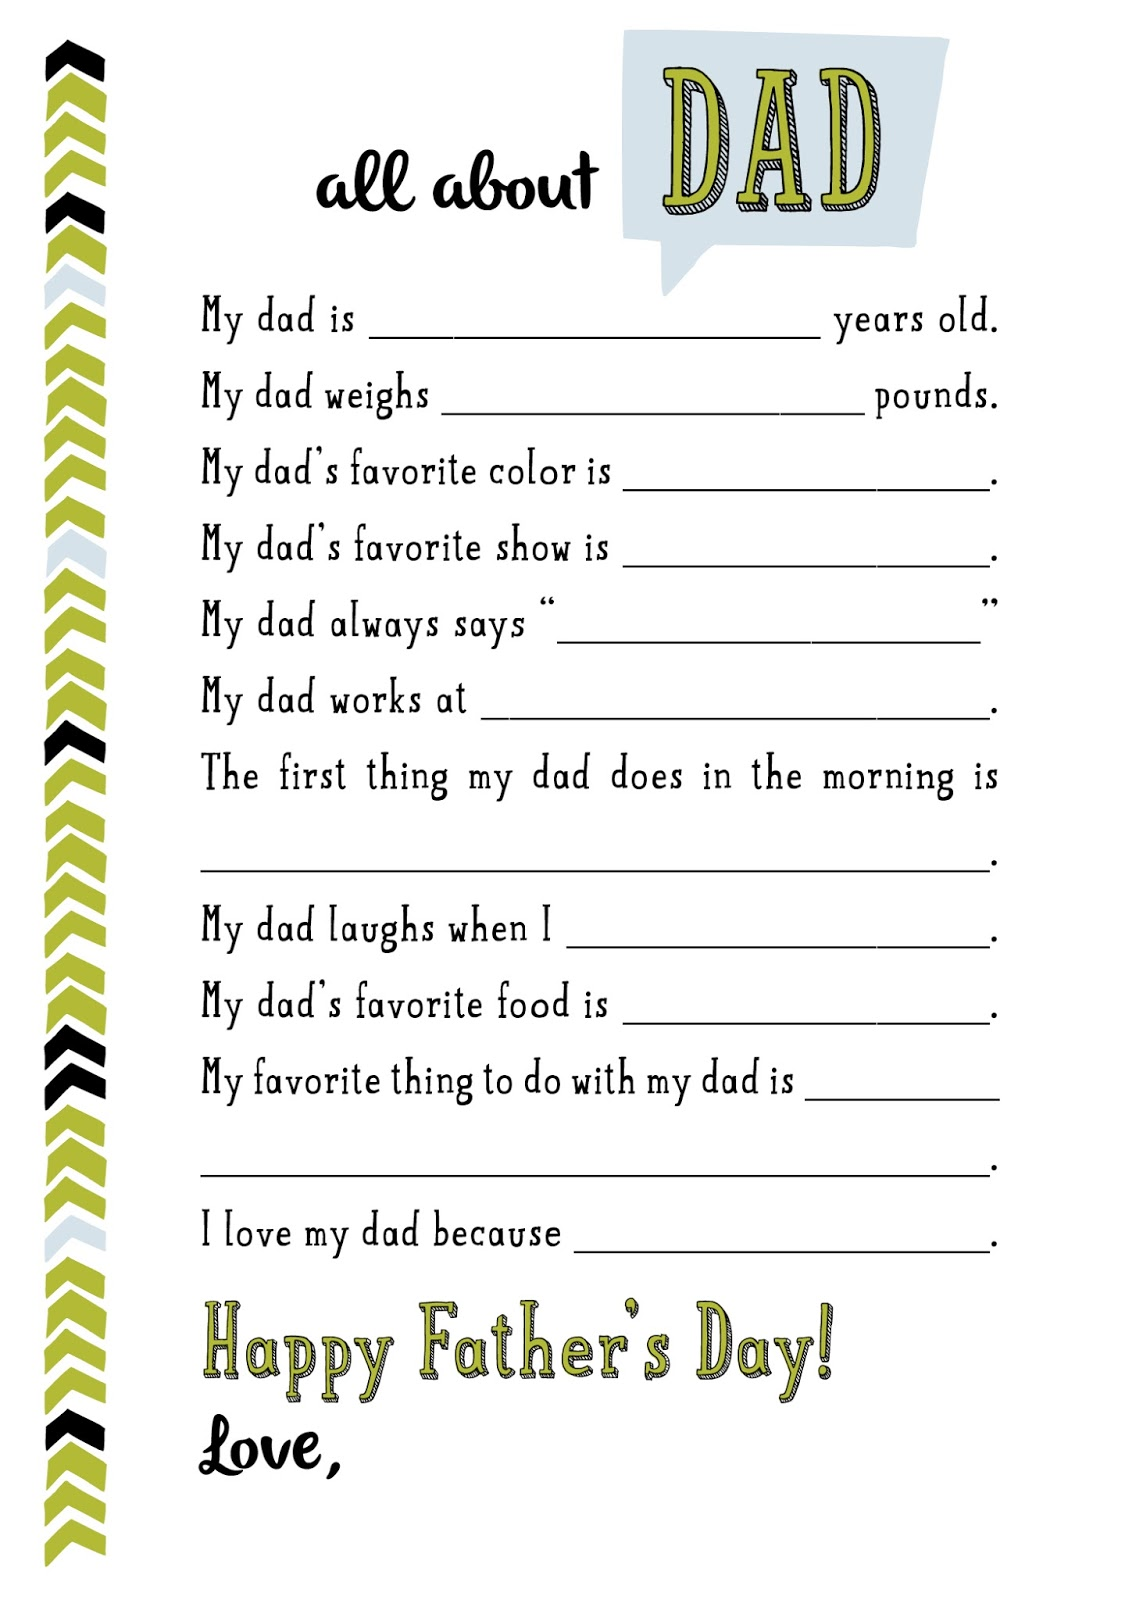 Accomplished image with all about my dad printable